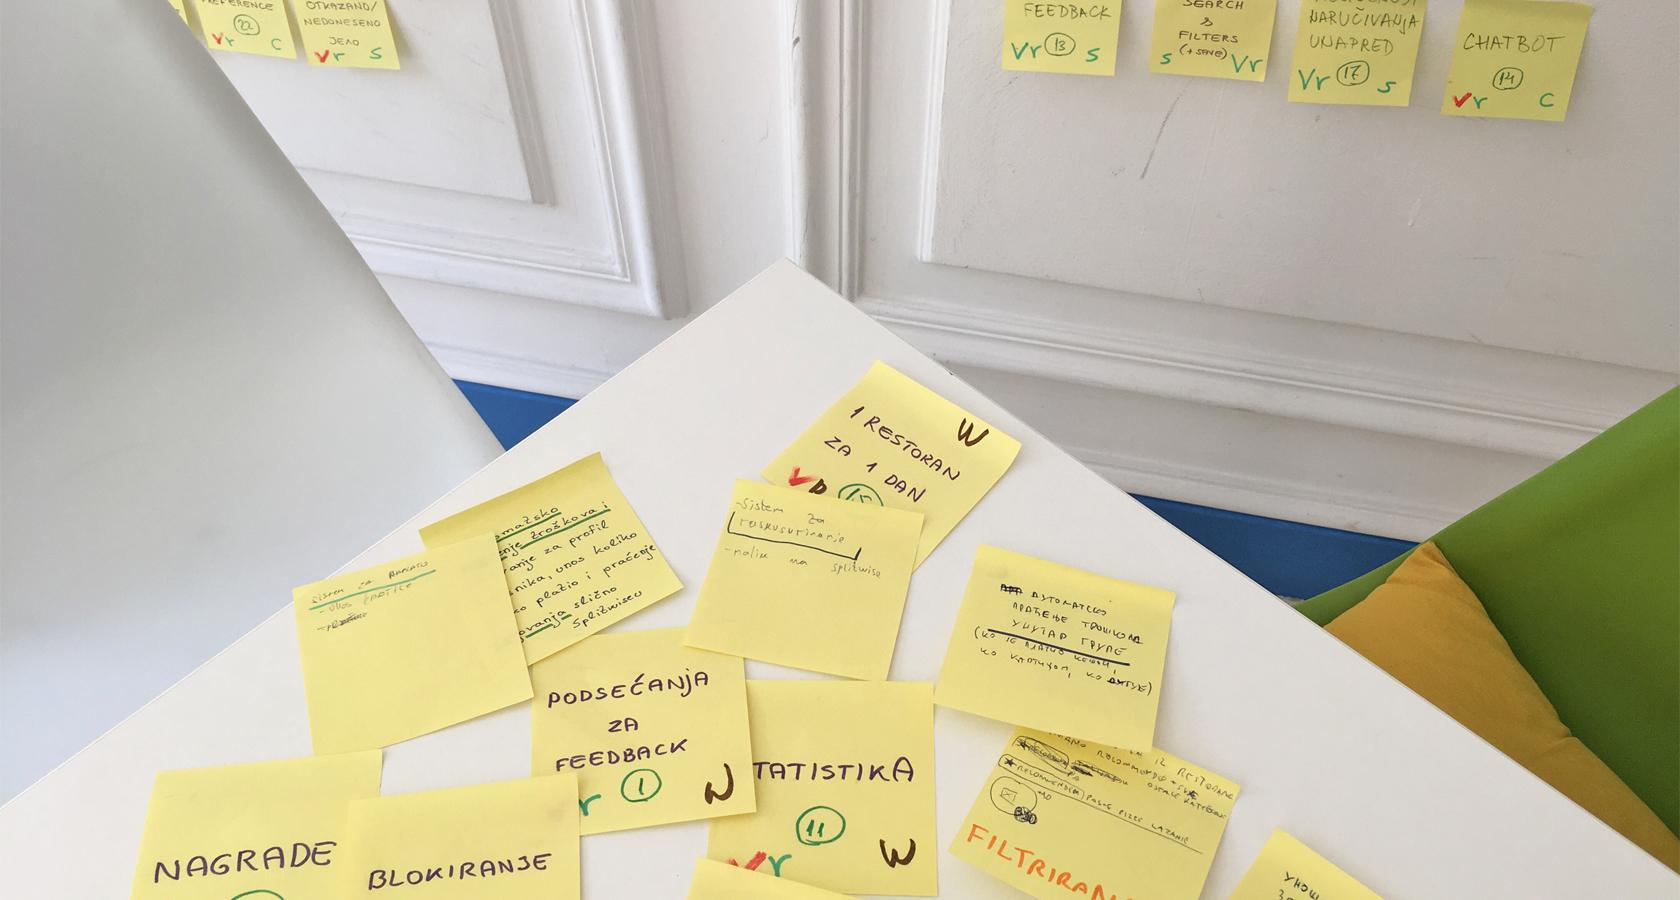 UX design process collaboration to meet user experience goals